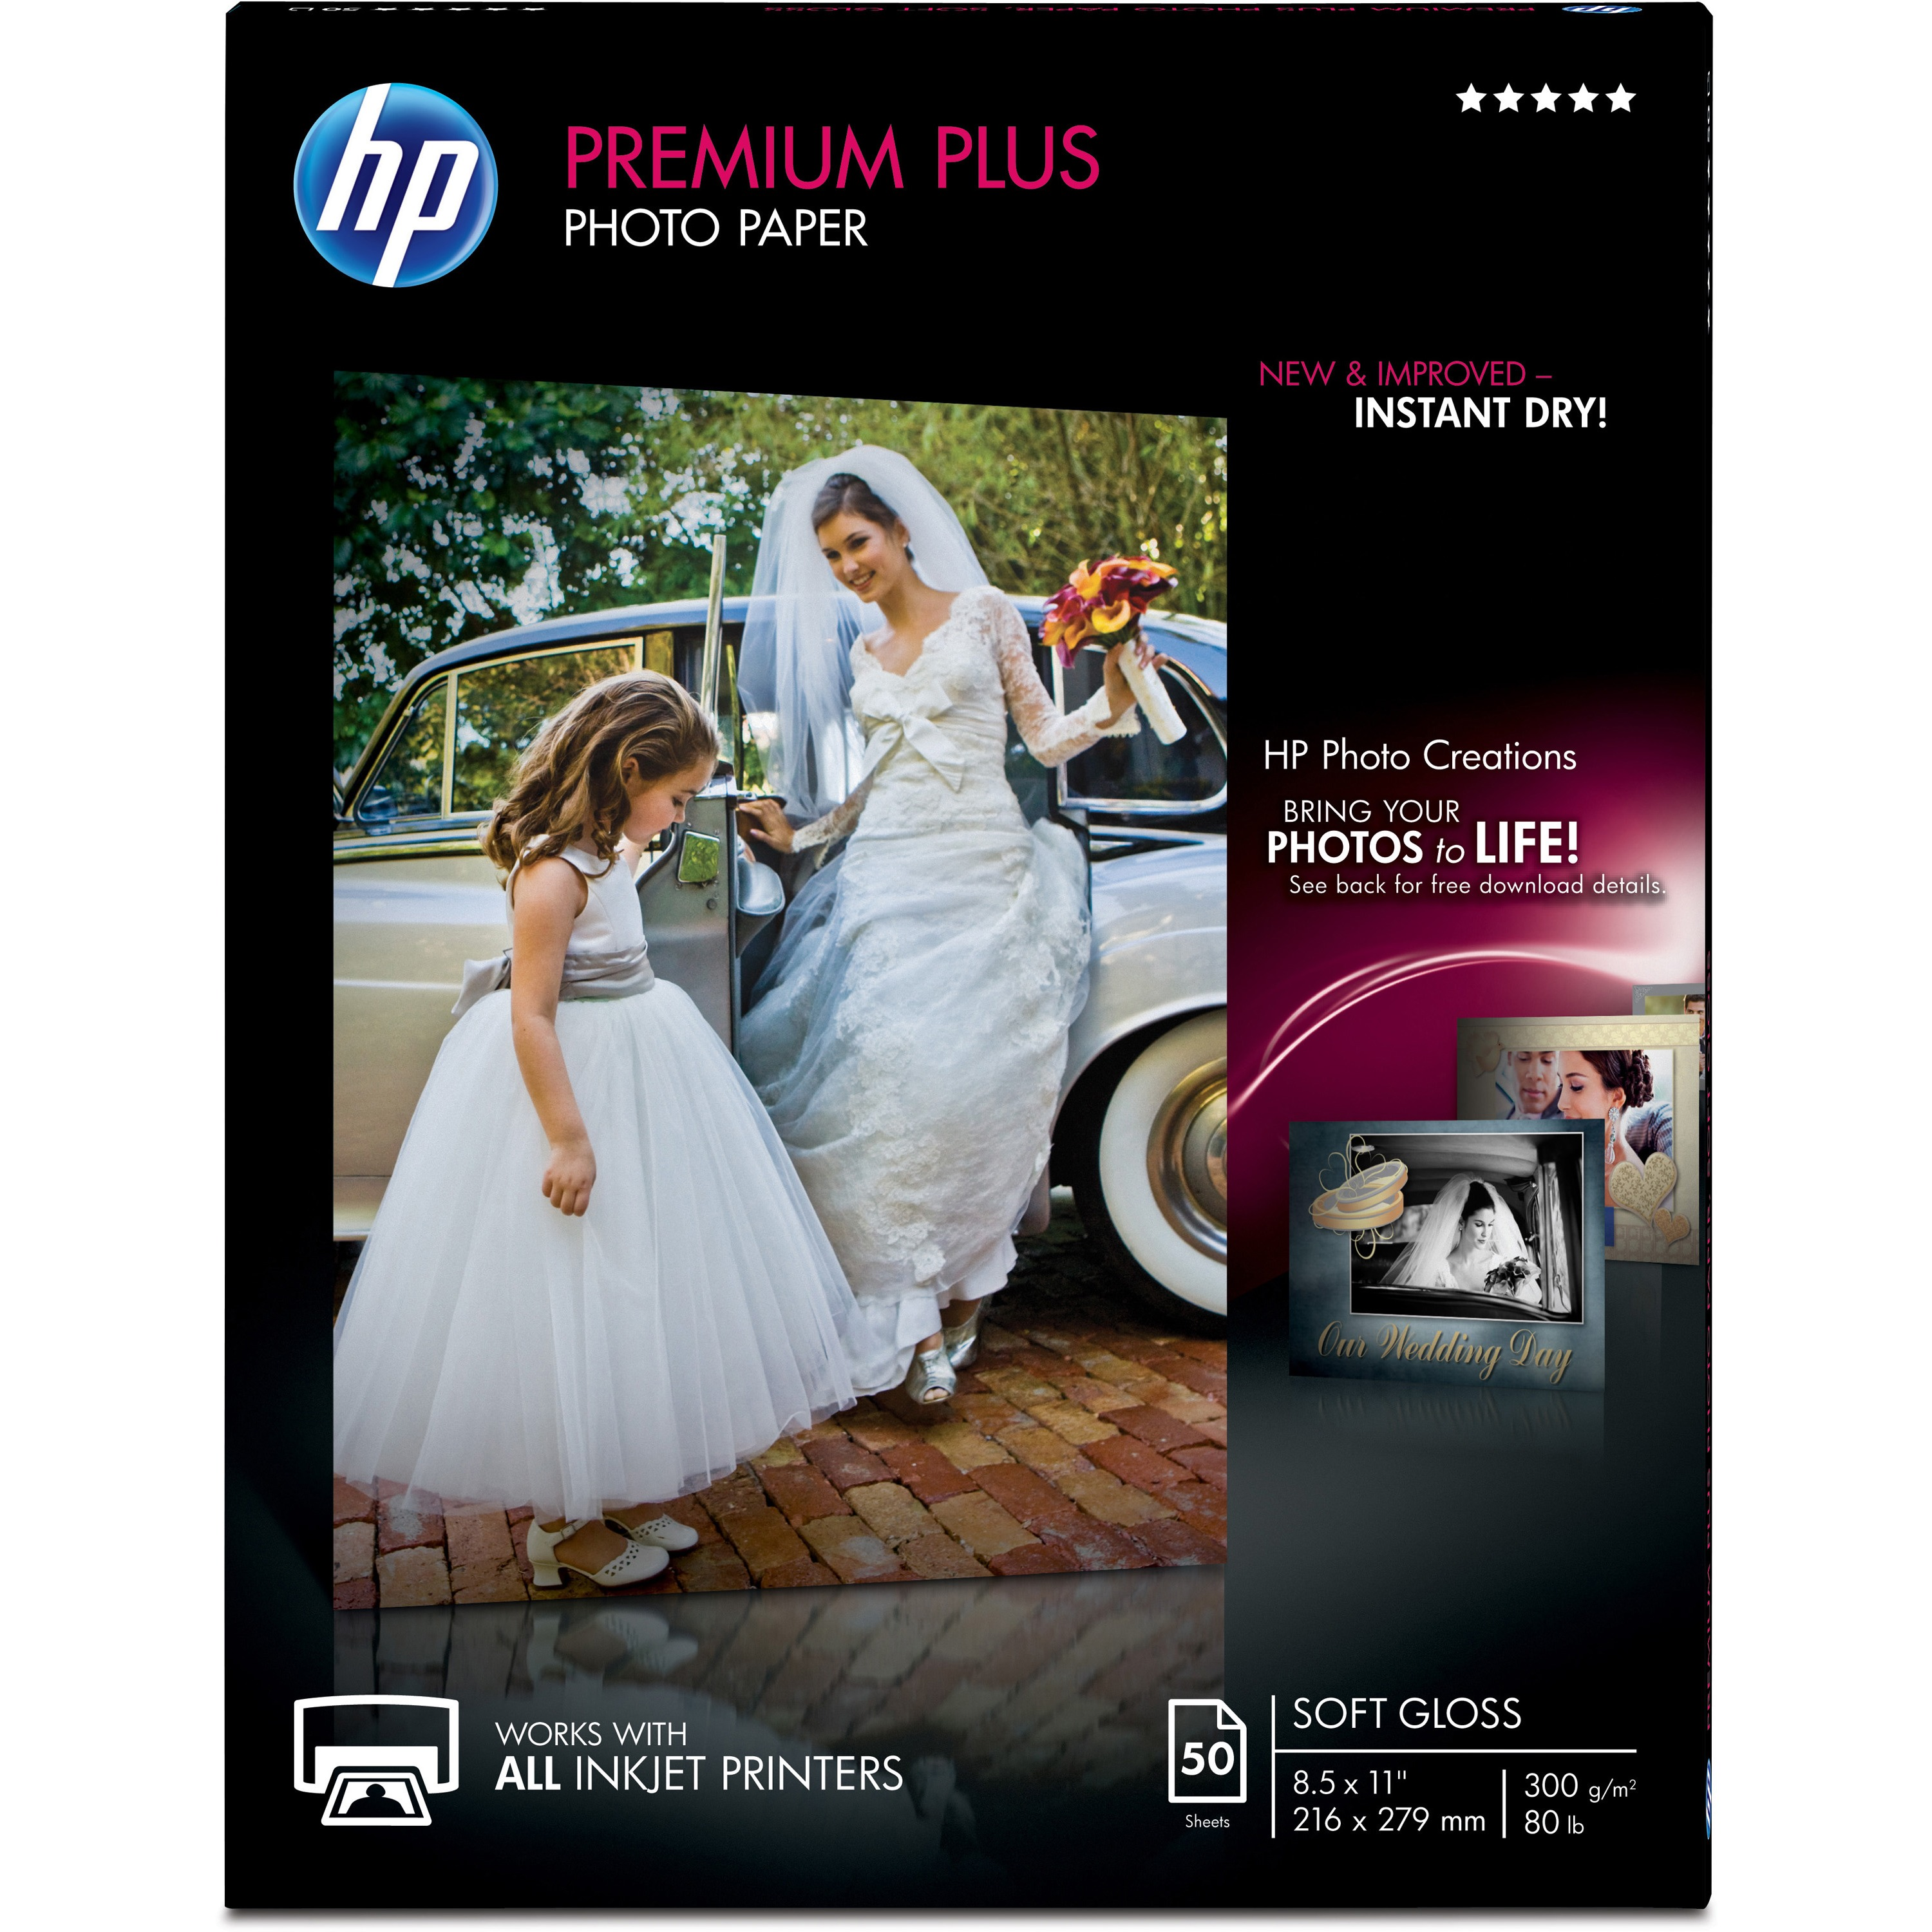 HP Premier Plus Inkjet Print Photo Paper, White, 50 / Pack (Quantity)